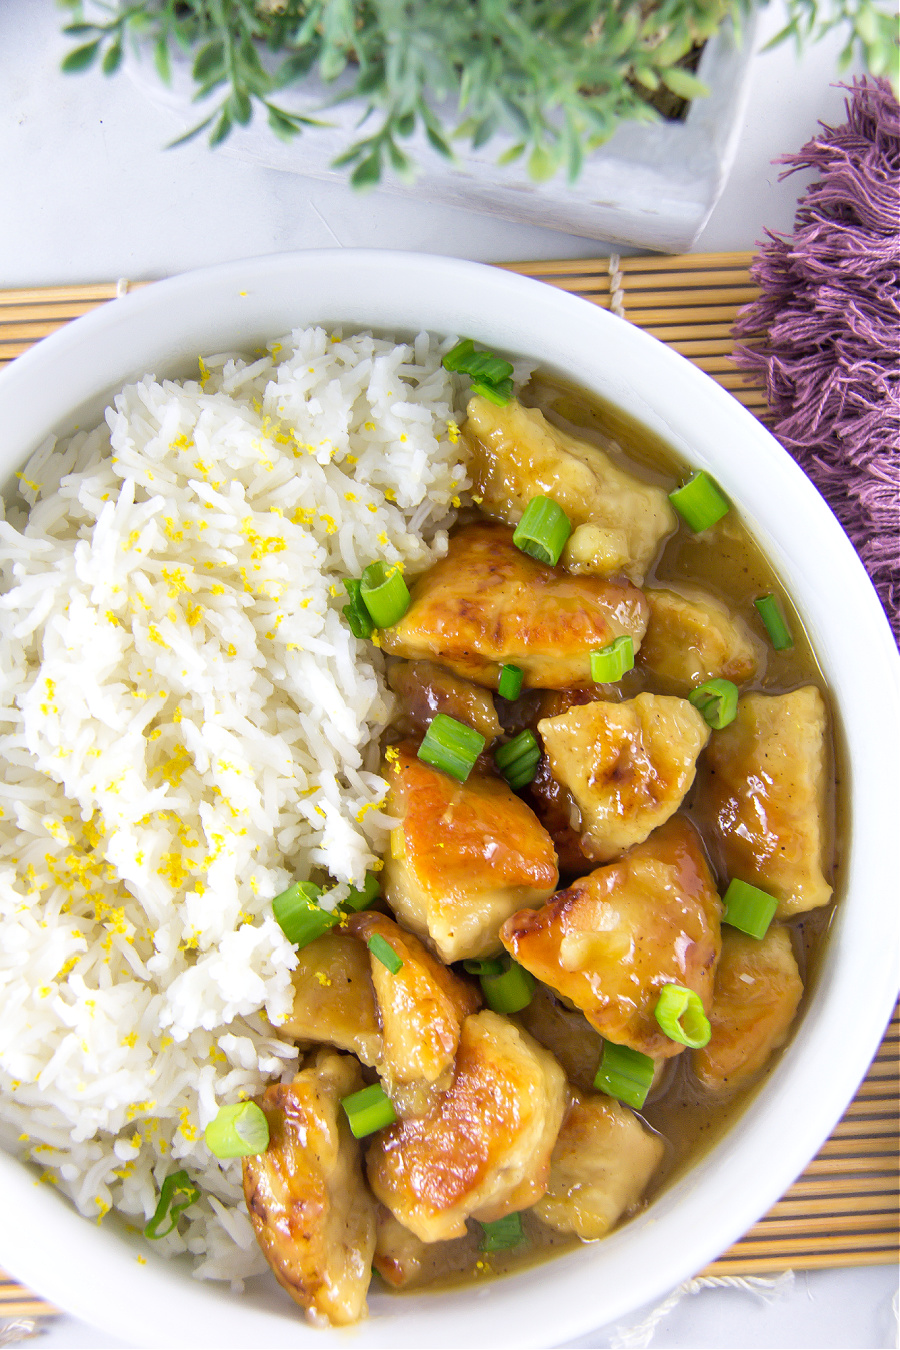 Homemade lemon chicken garnished with green onions in a bowl and served with white rice garnished with lemon rind.